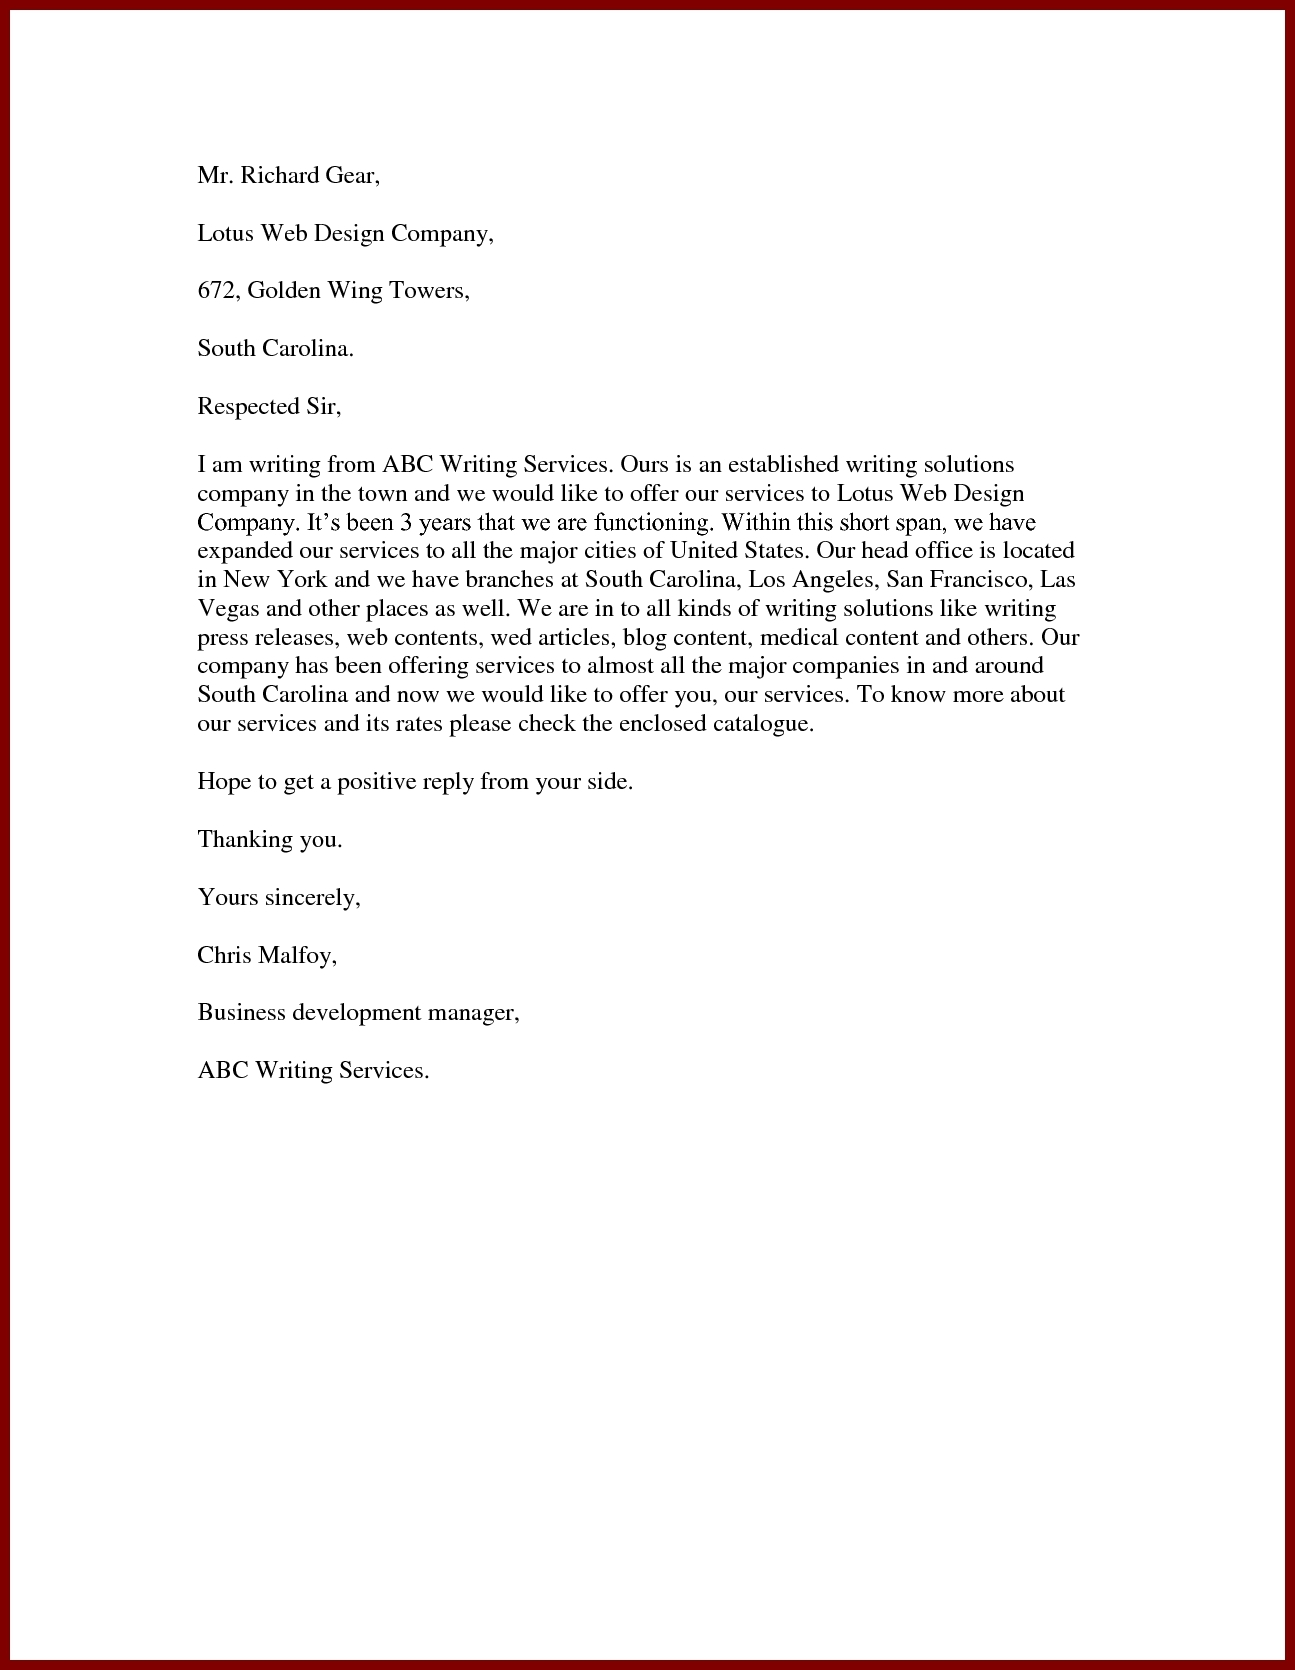 Letter To Offer Services   Qualads intended for Proposal Letter To